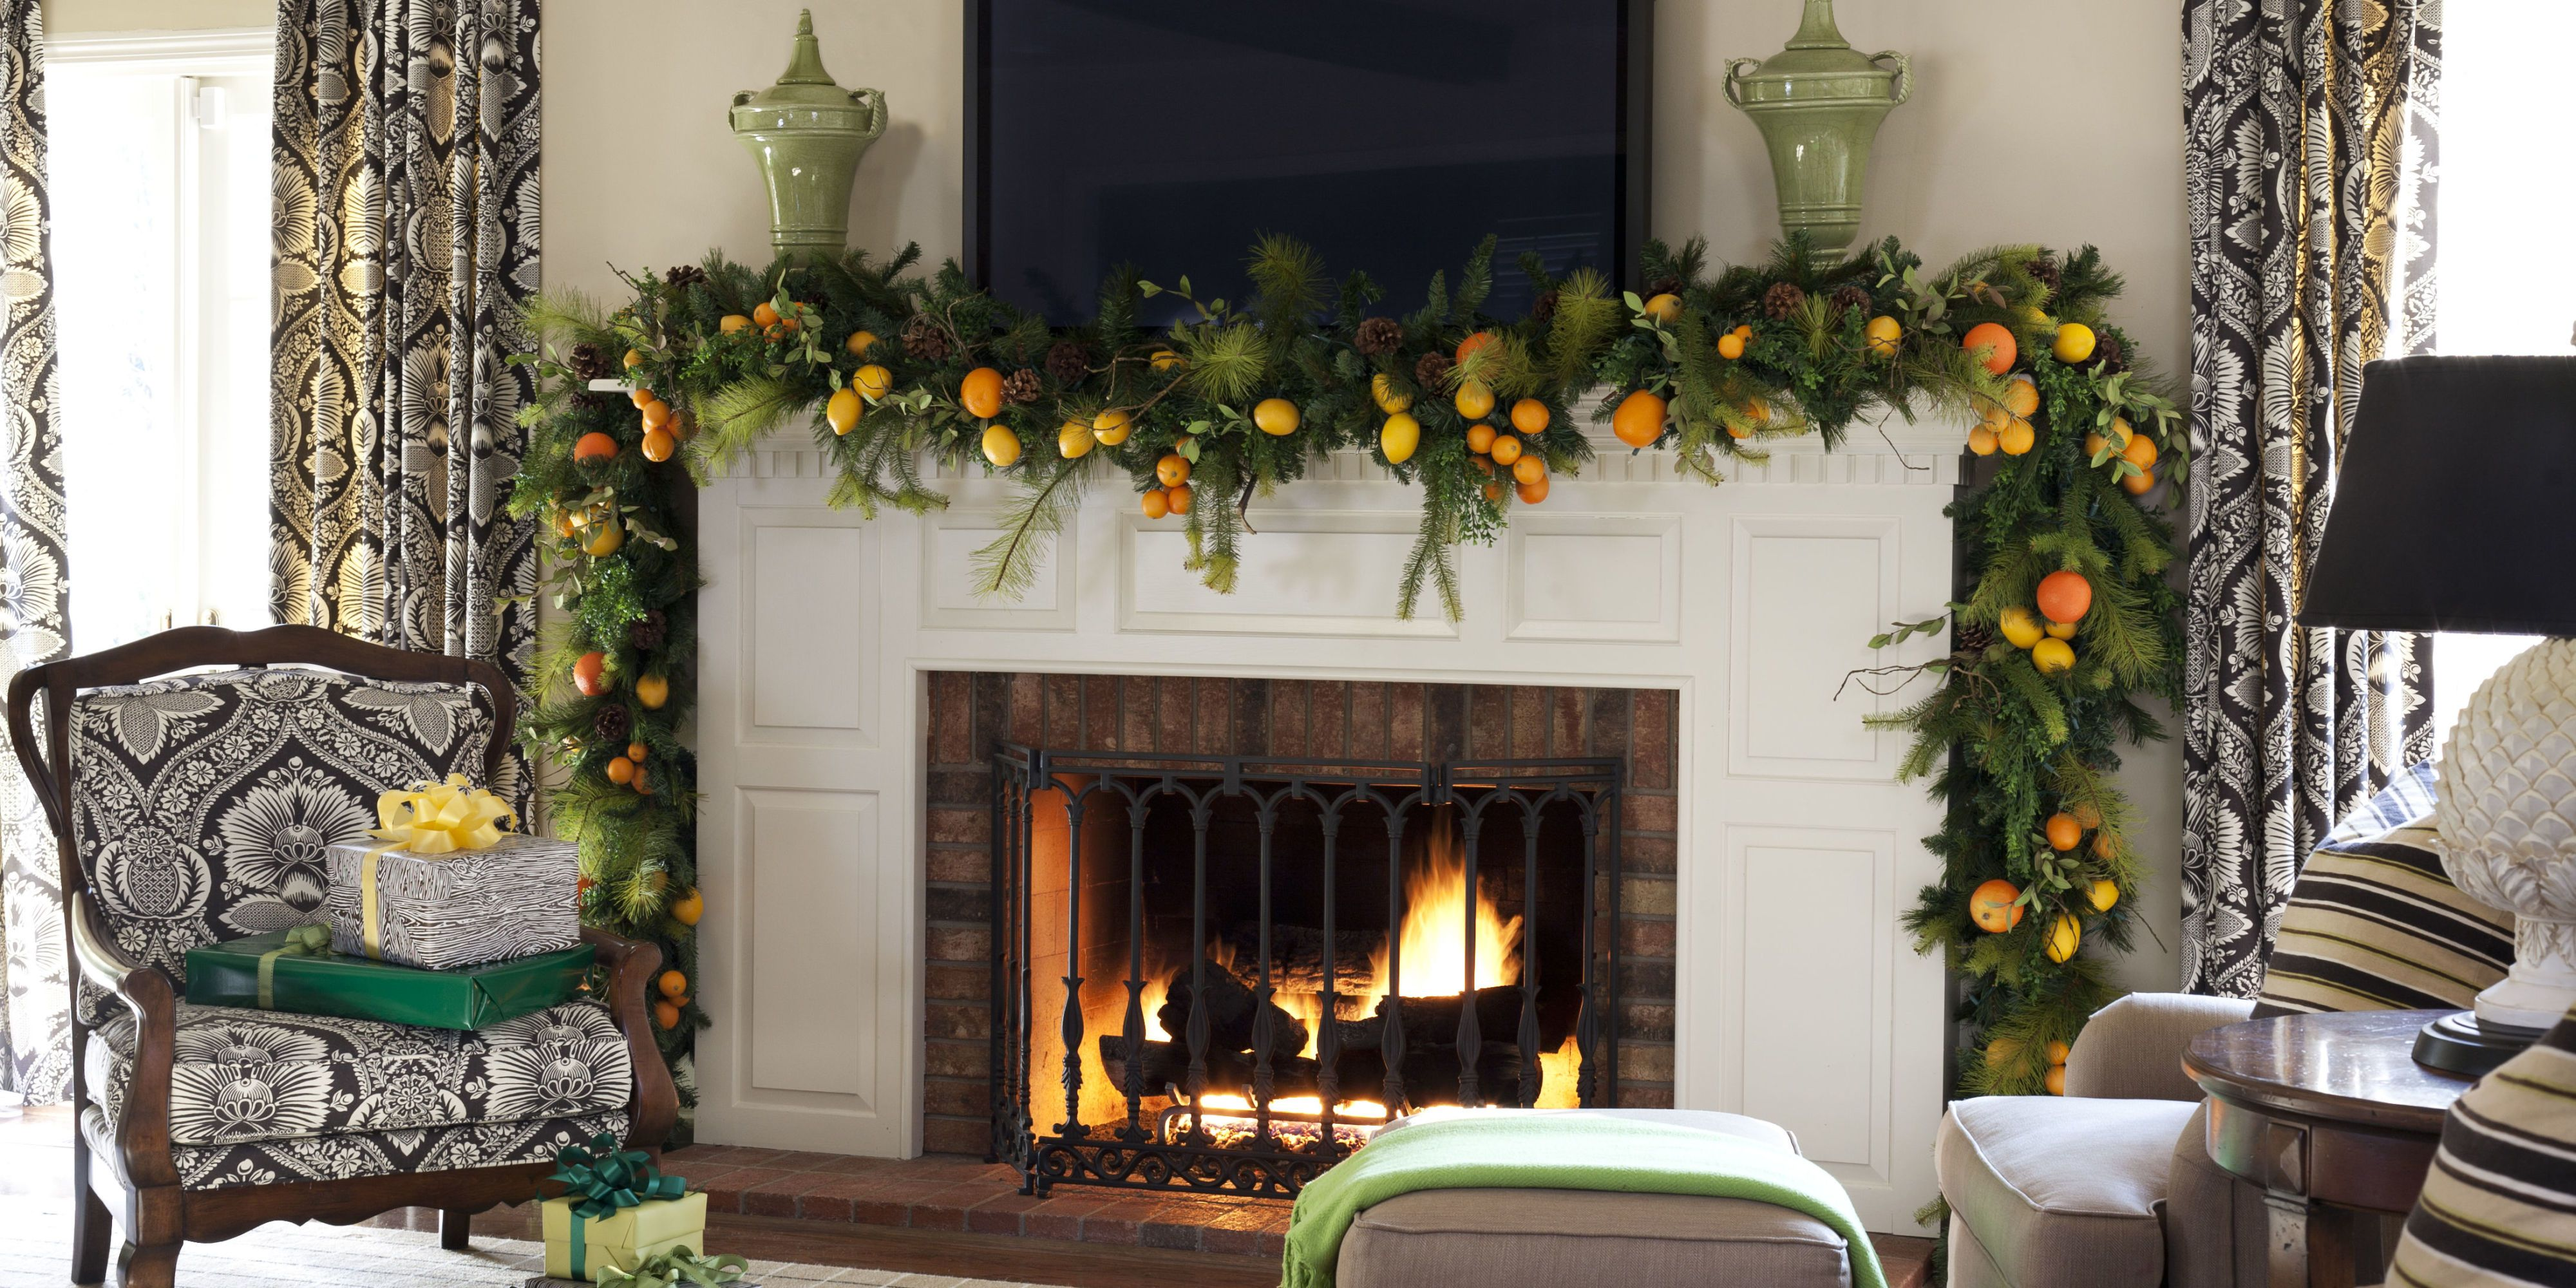 These Tips And Tricks Will Transform Your Homeu0027s Holiday Aesthetic.